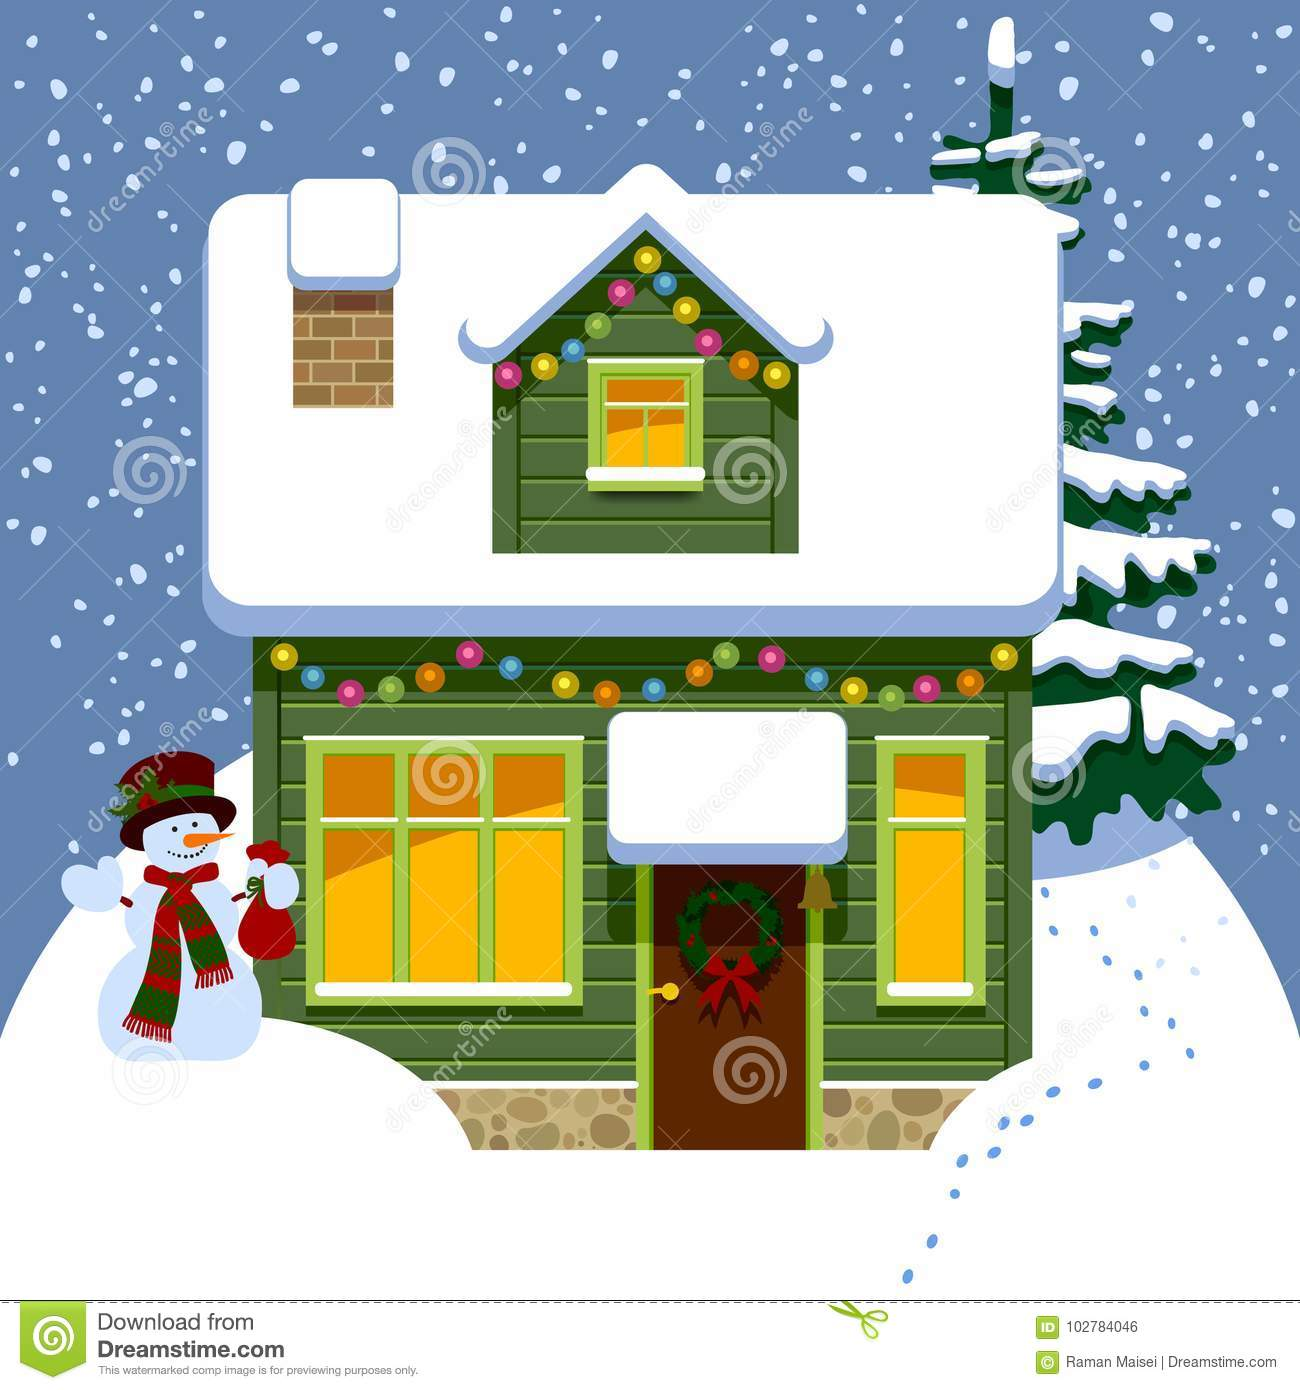 Christmas House Drawing.Green Wooden Christmas House In Winter Covered By Snow Stock